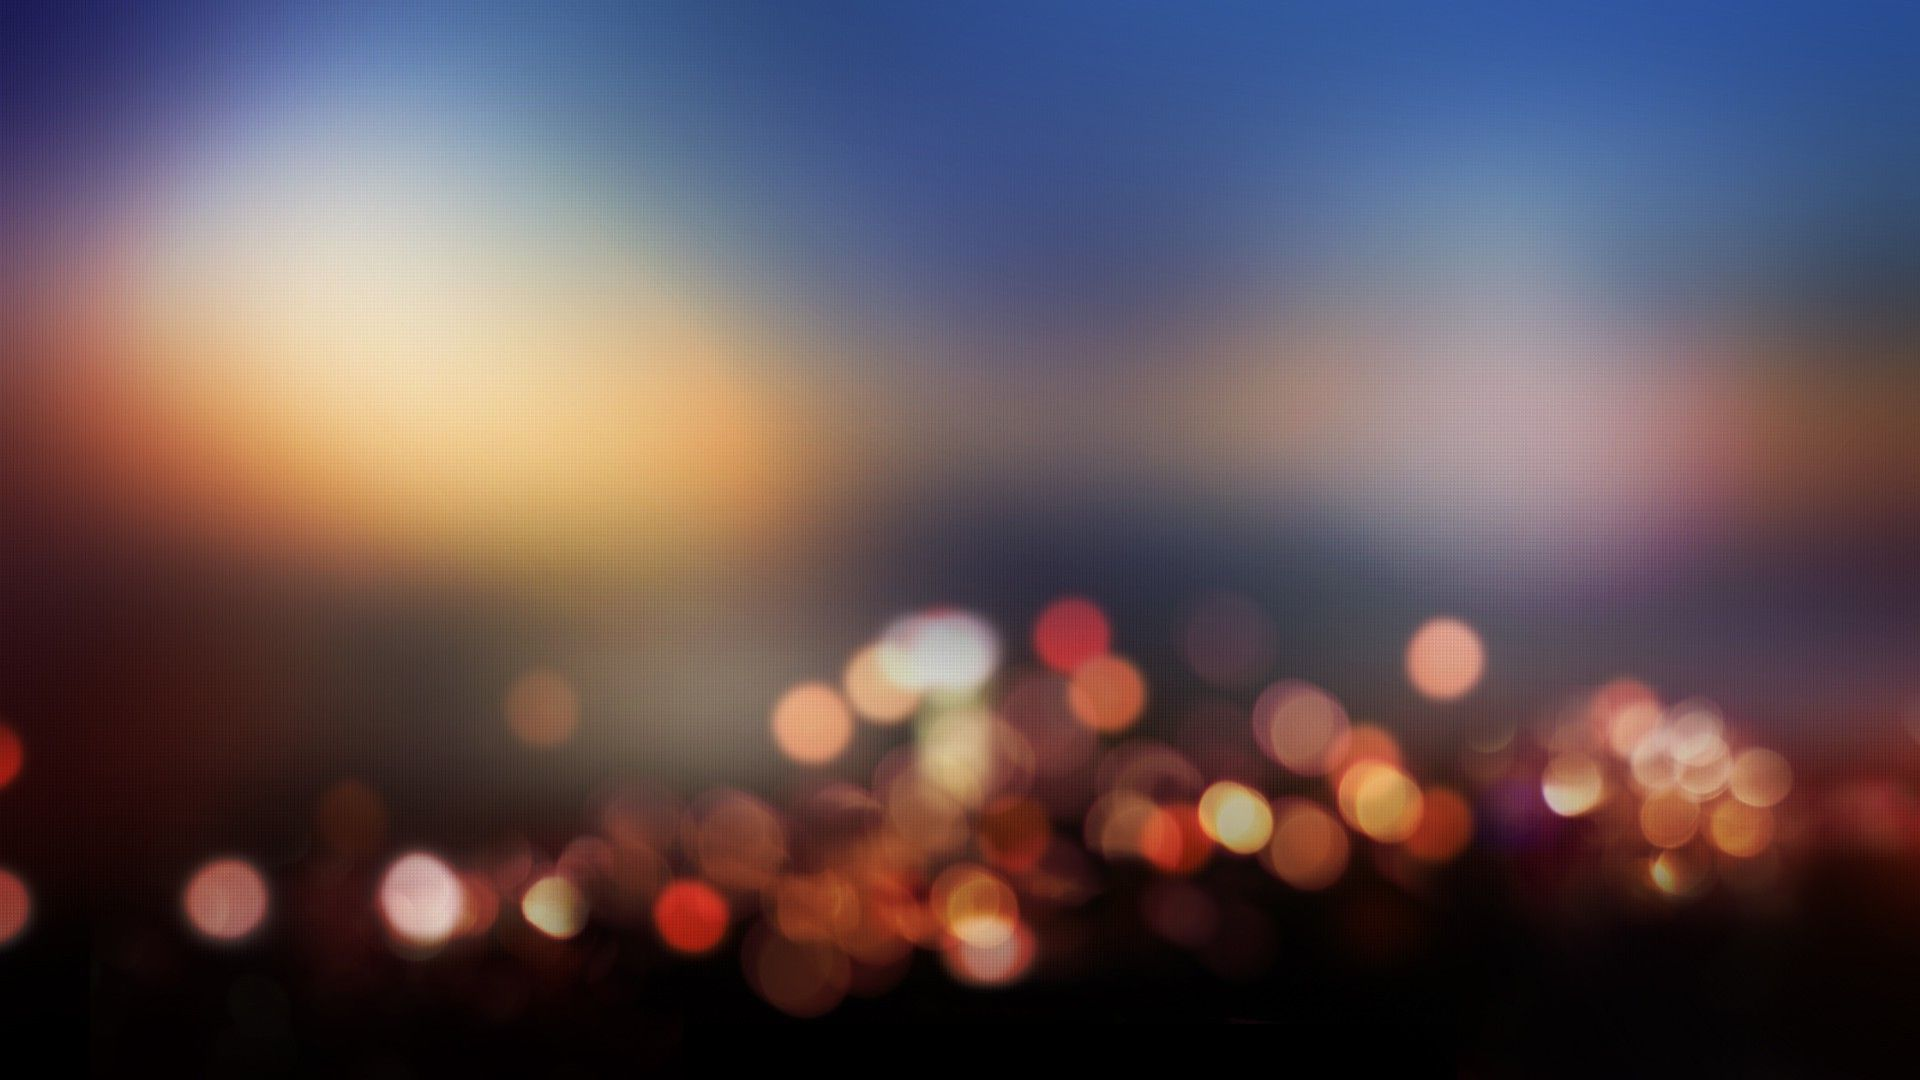 blurred-city-lights-photography-hd-wallpaper-1920×1080-9111 « enqwest